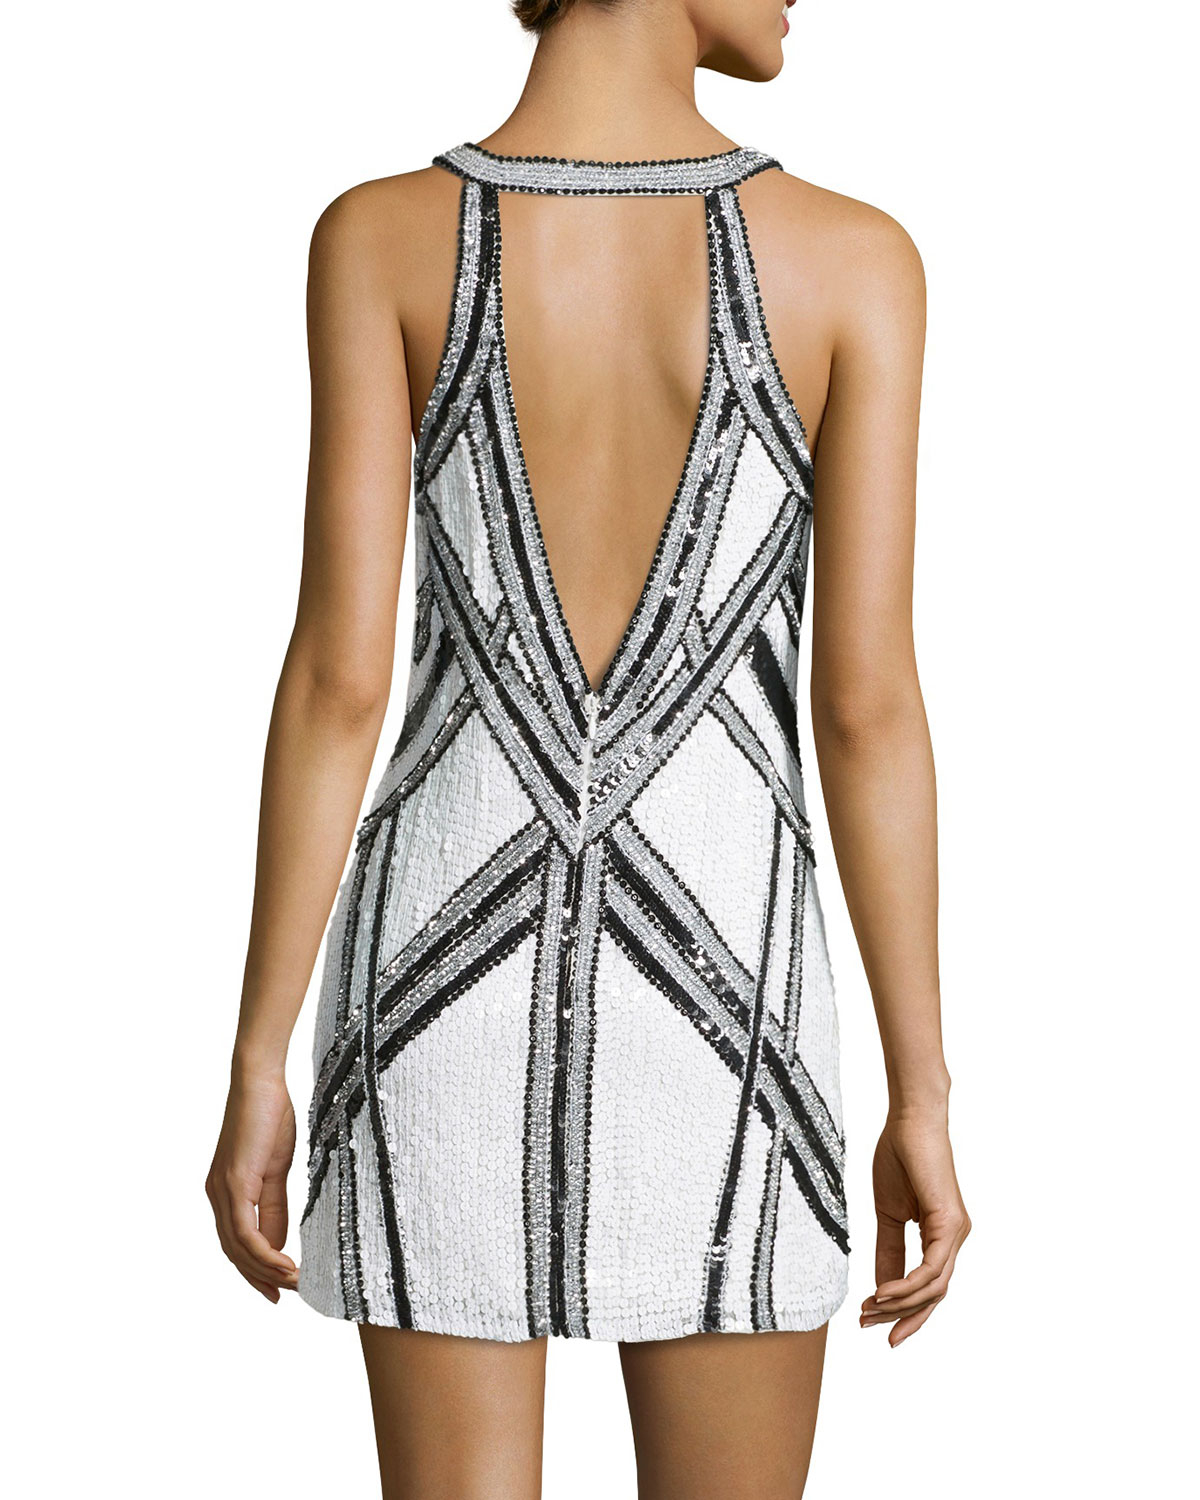 Parker black and white sequin dress